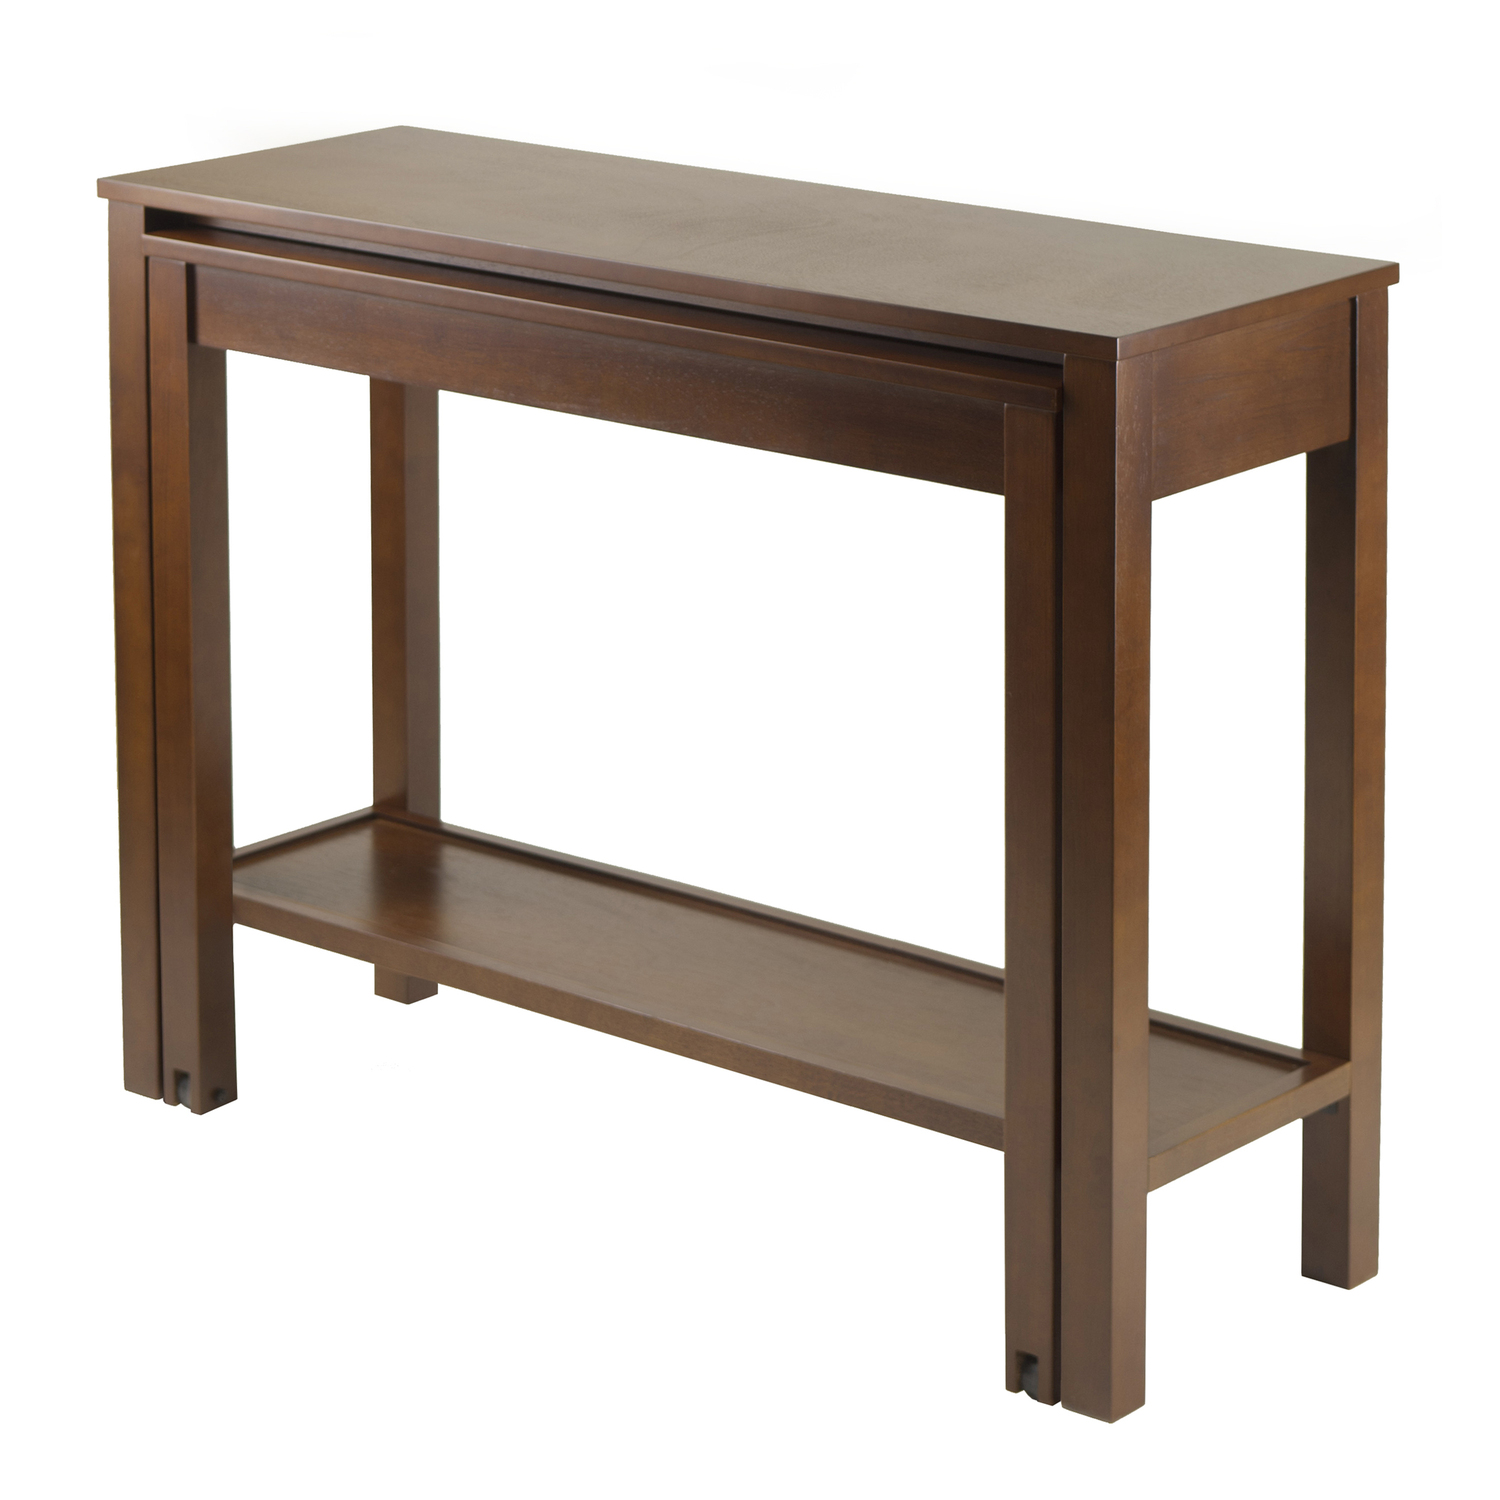 Winsome wood brandon expandable console table by oj for Table console